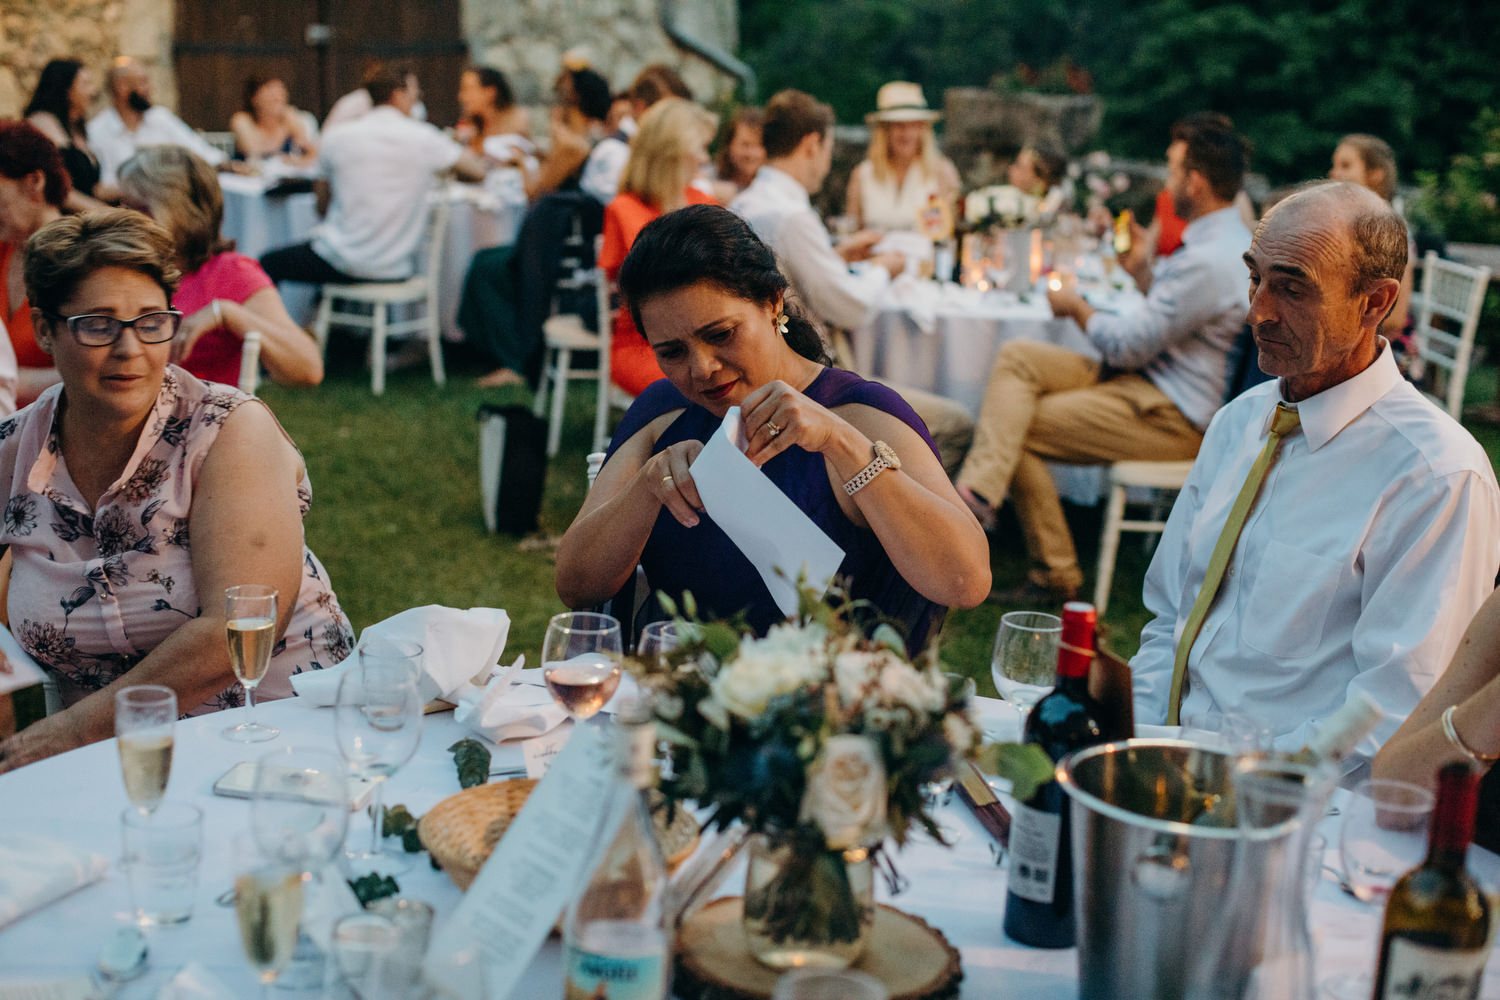 guests opening table games at wedding